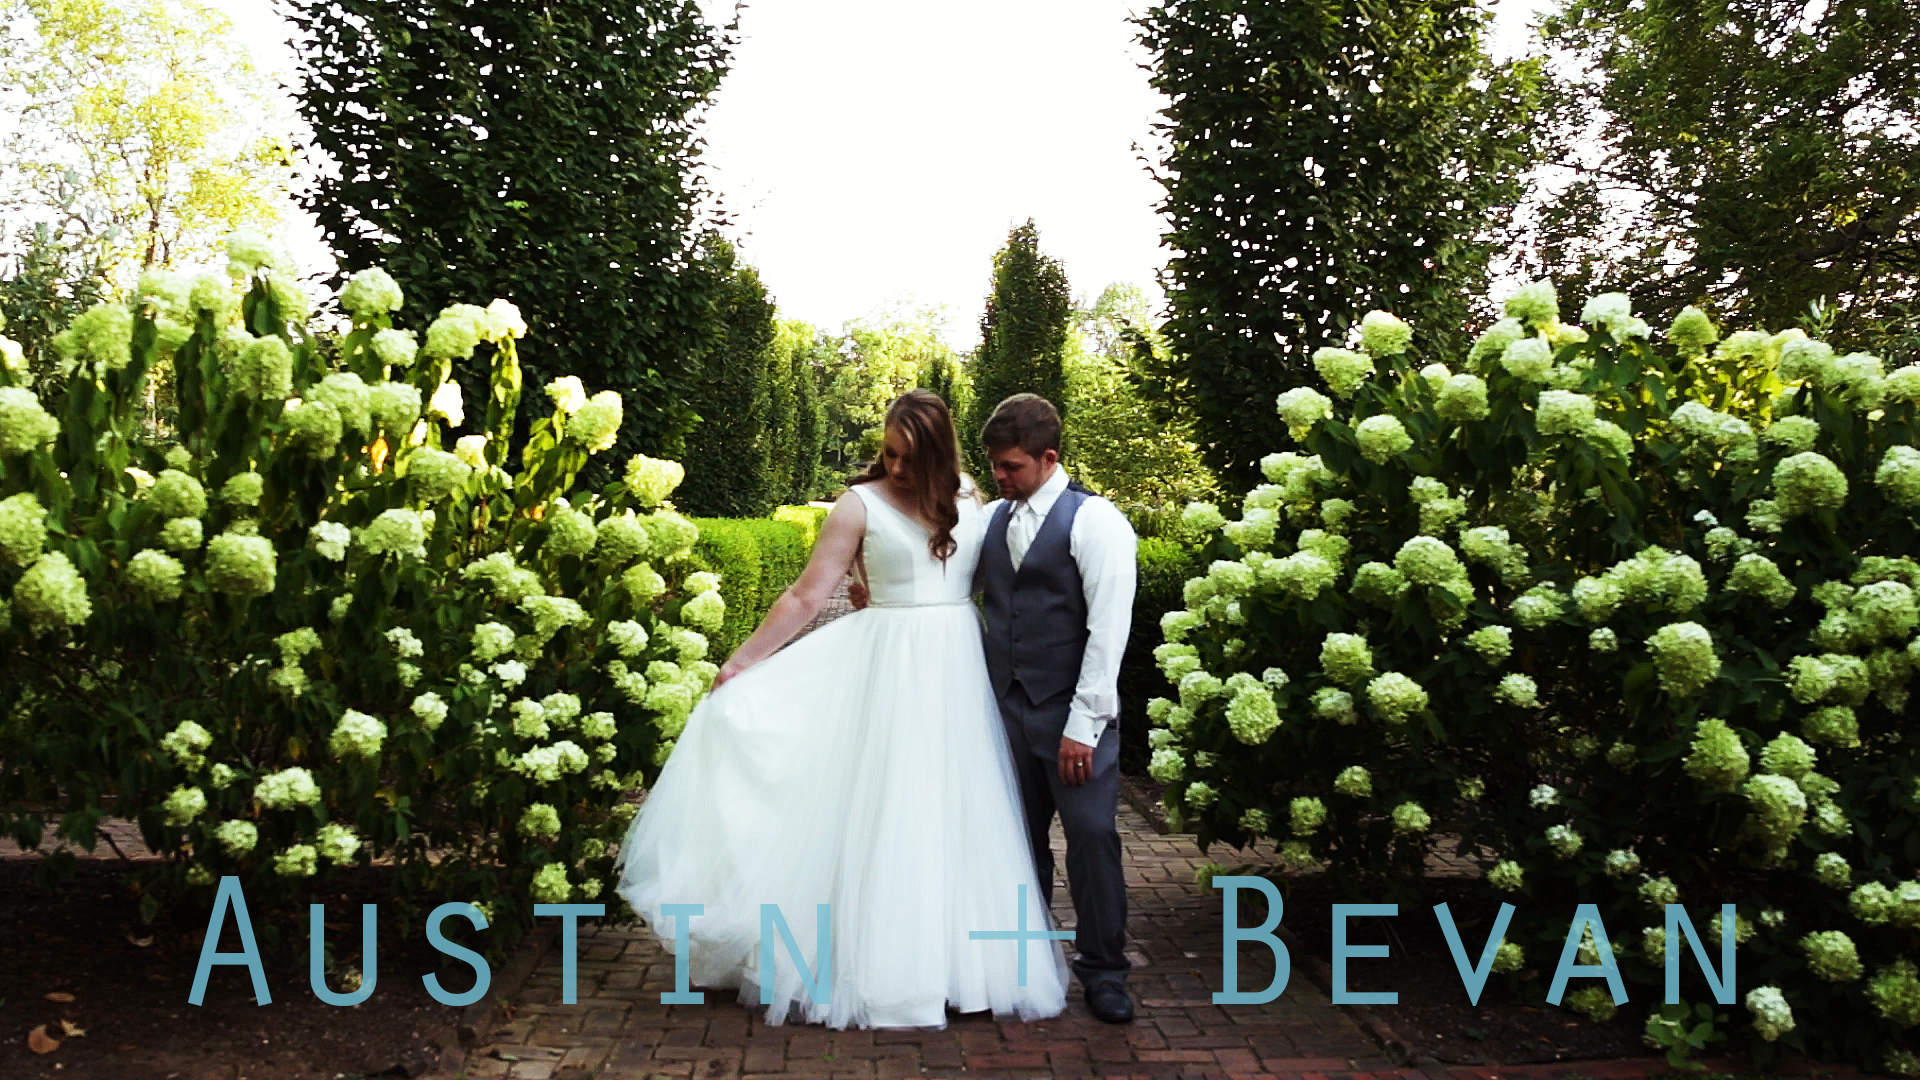 Austin + Bevan | Bardstown, Kentucky | My Old Kentucky Home